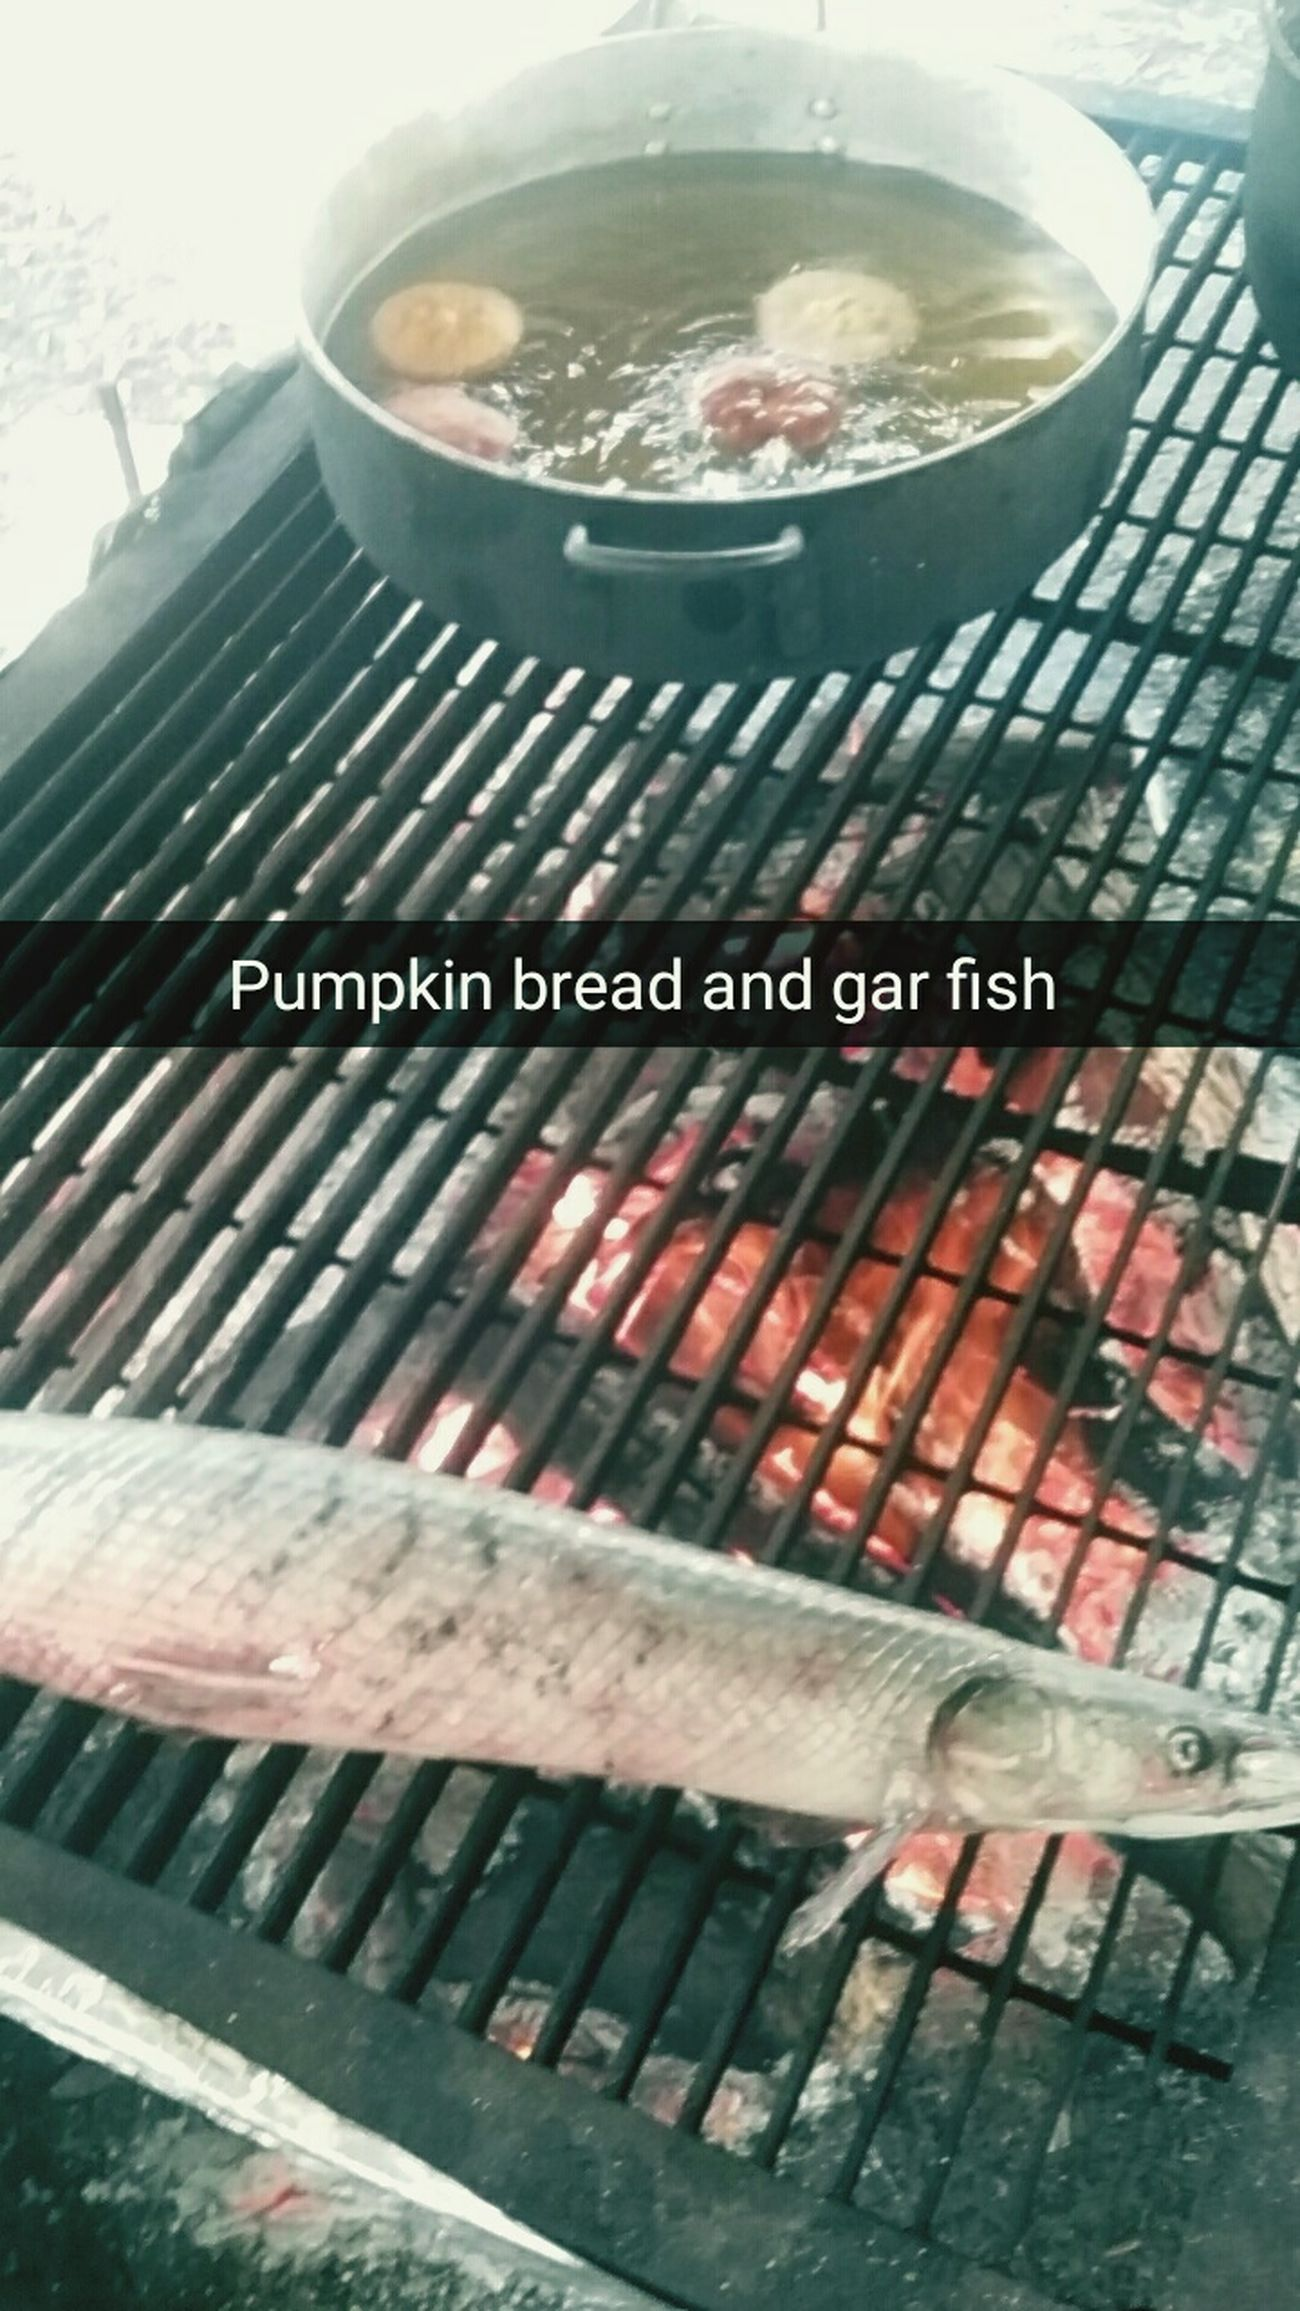 Outside Cooking Pumpkin Bread Chalo Nitka Garfish